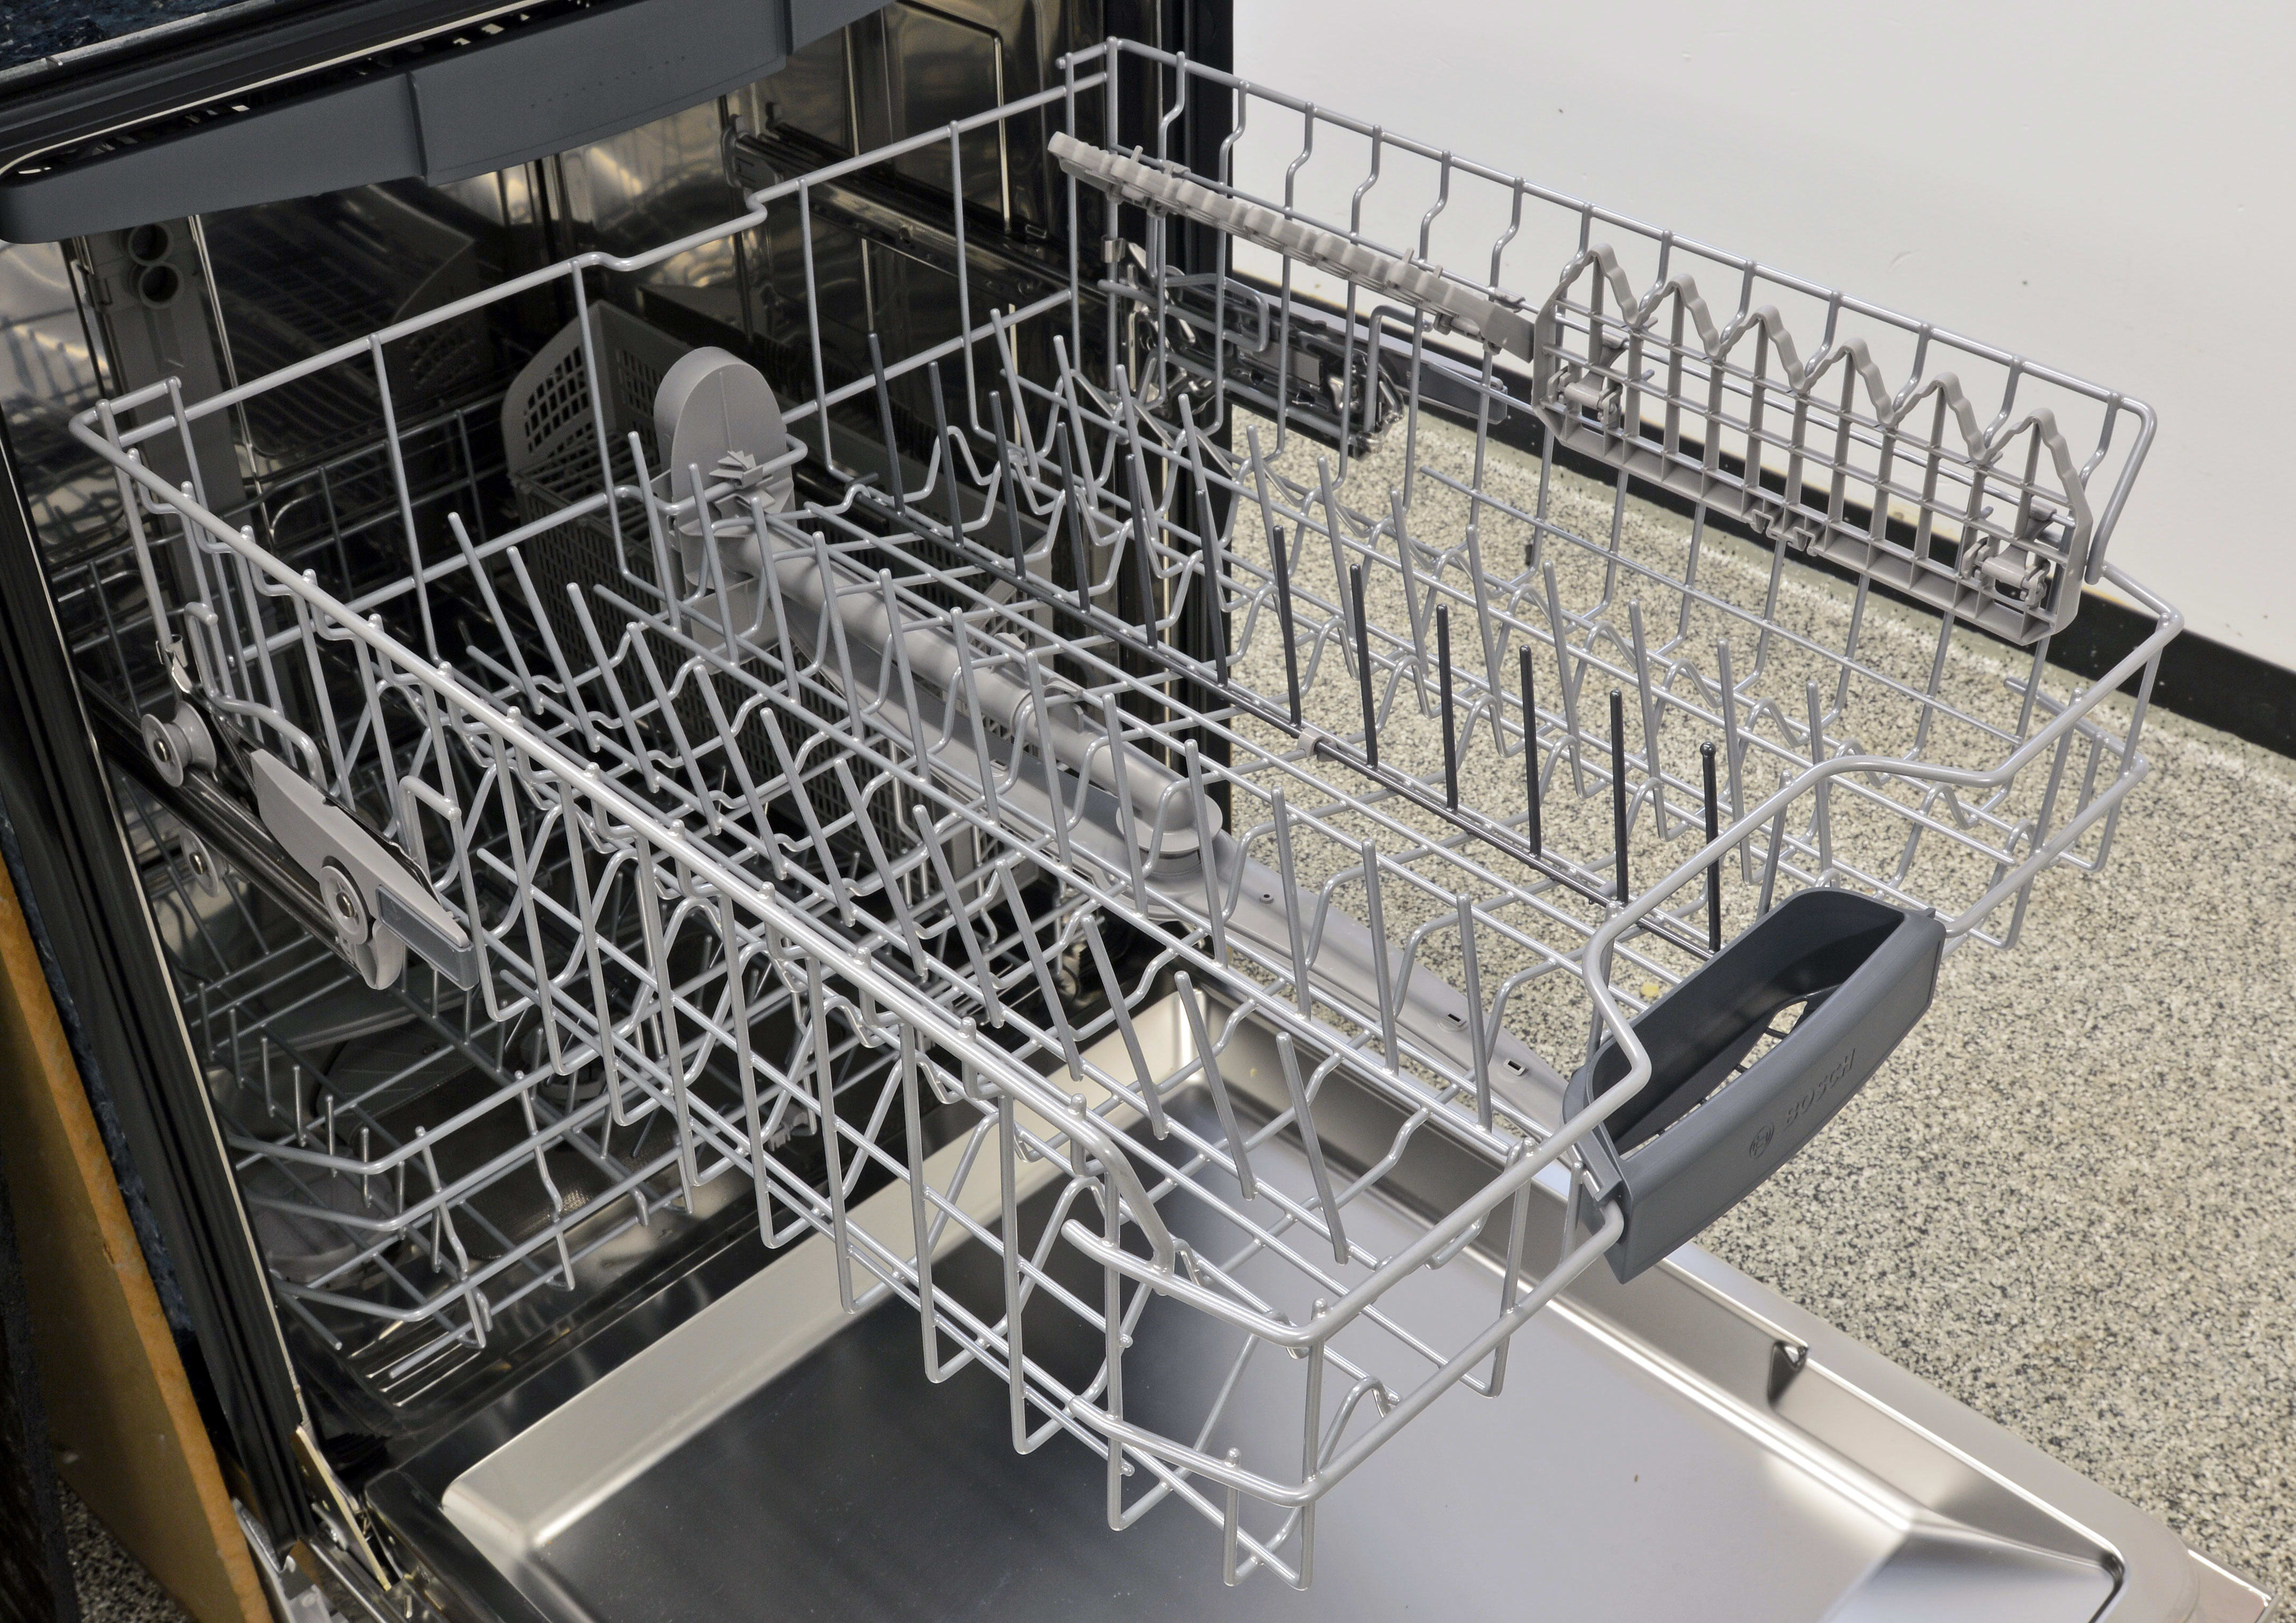 The upper rack is just as sturdy as the lower one, and has two sets of stemware clips attached to one side.